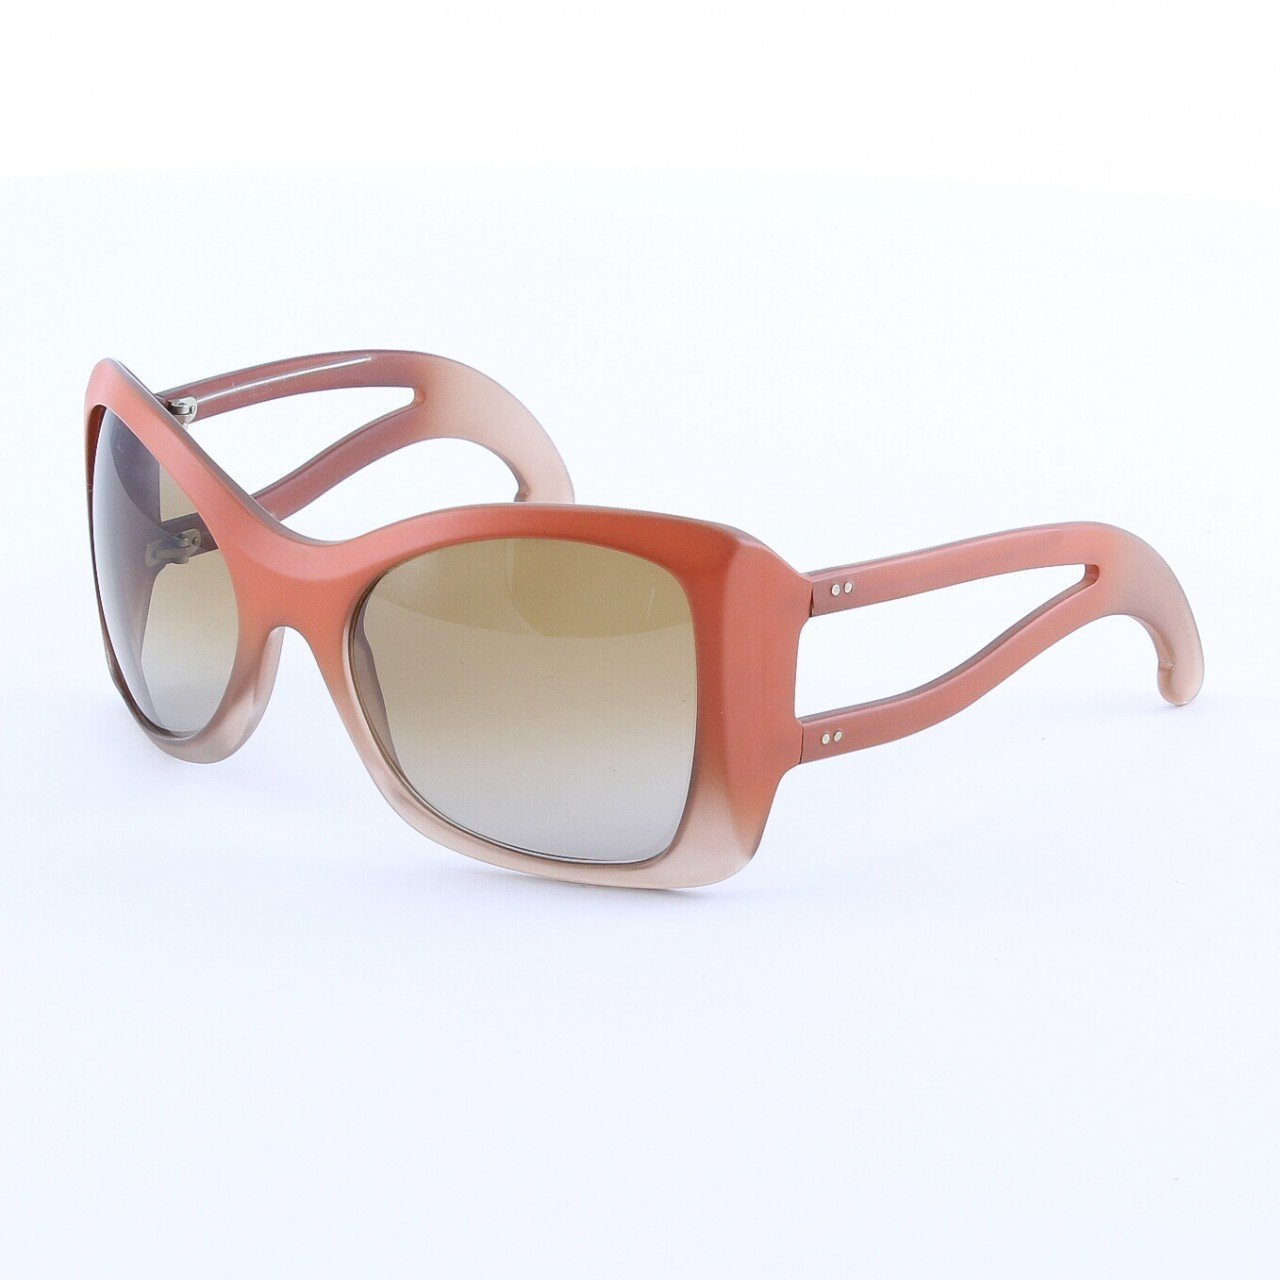 Marni MA150S Sunglasses Col. 01 Opaque Frosted Salmon with Brown Lenses